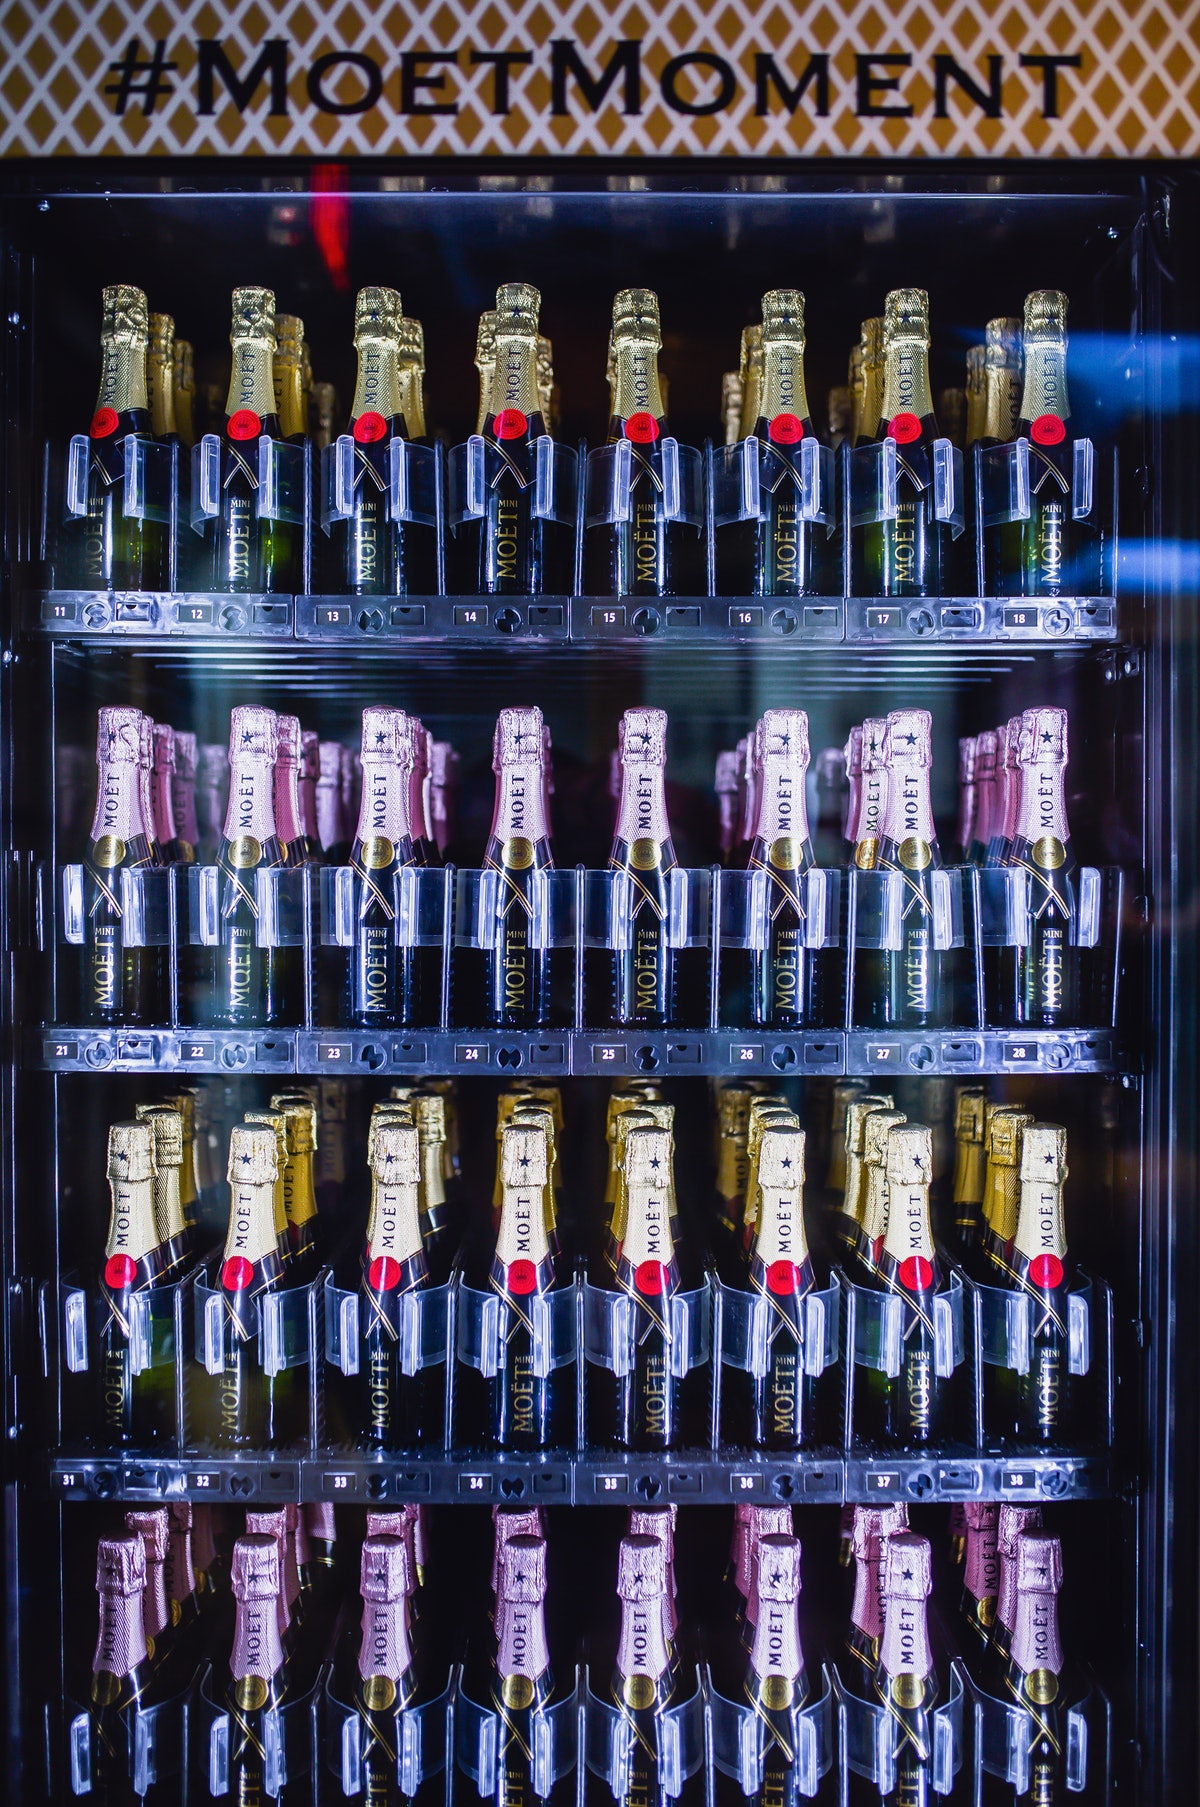 Bottles of Moët & Chandon Champagne are in a vending machine in The Lexington Hotel in New York City.